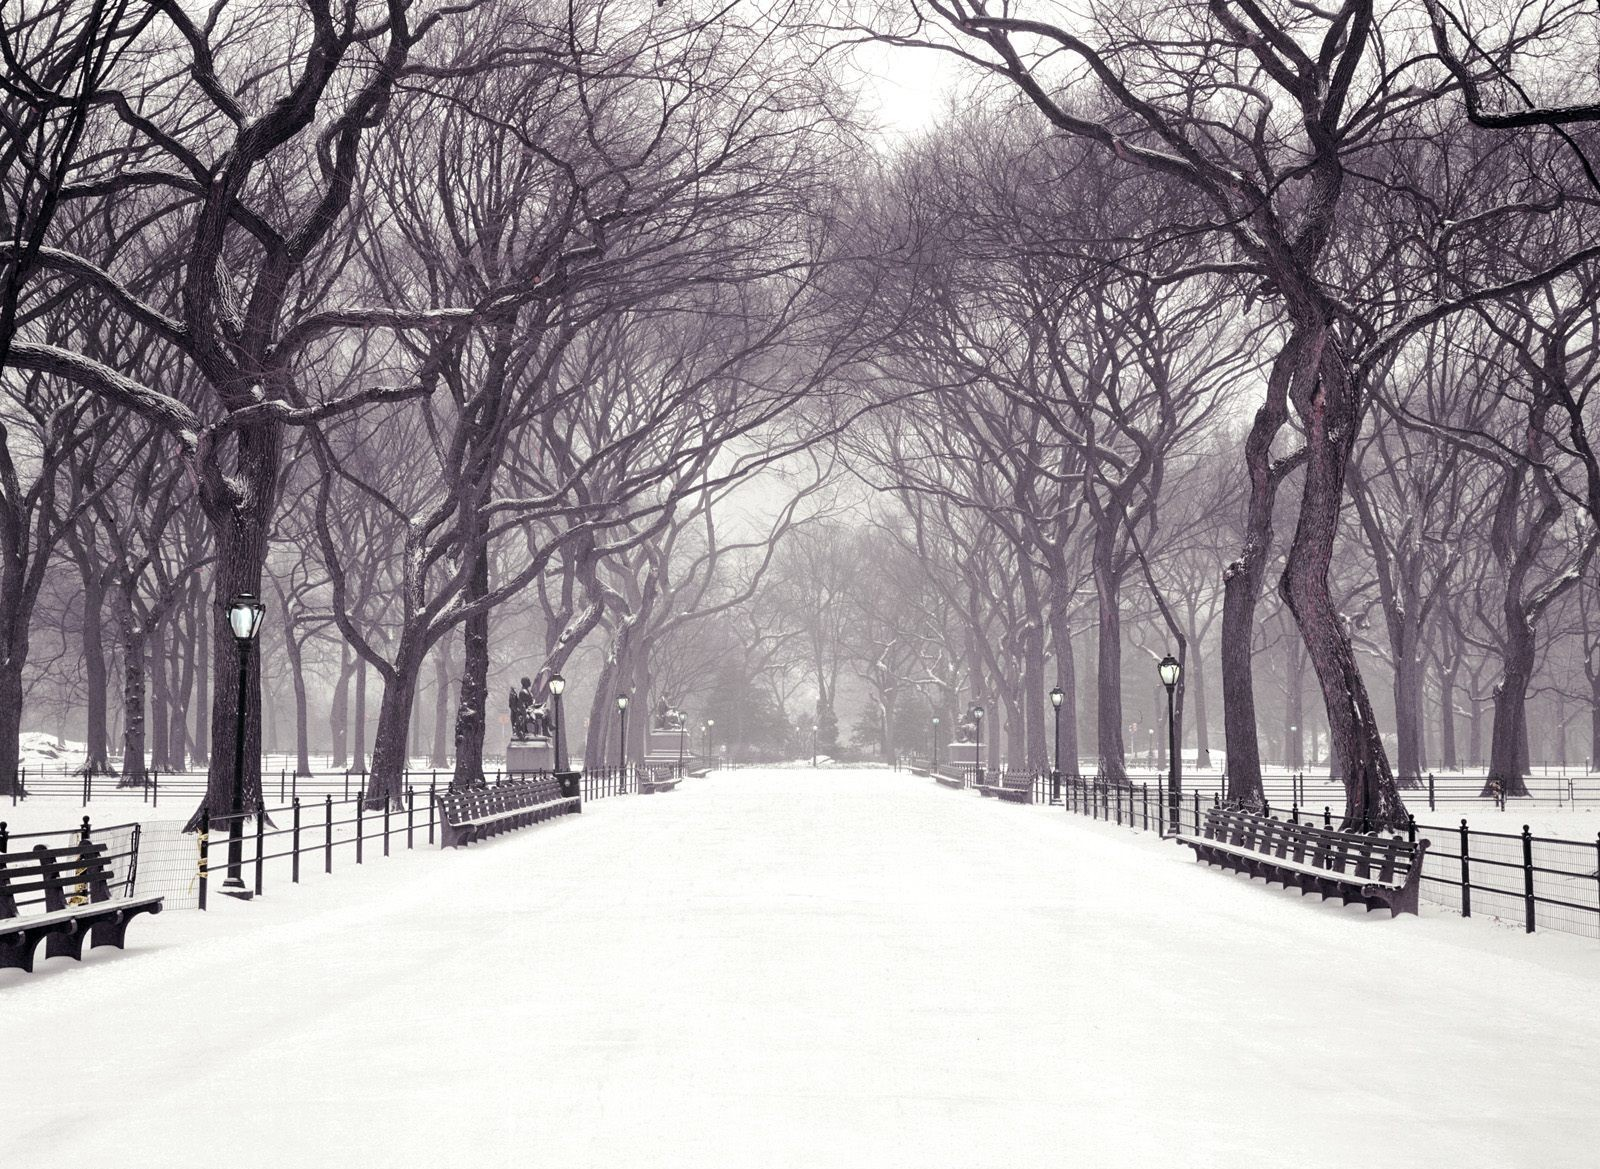 Snowy Central Park Wallpapers Snowy Central Park Myspace Backgrounds 1600x1169